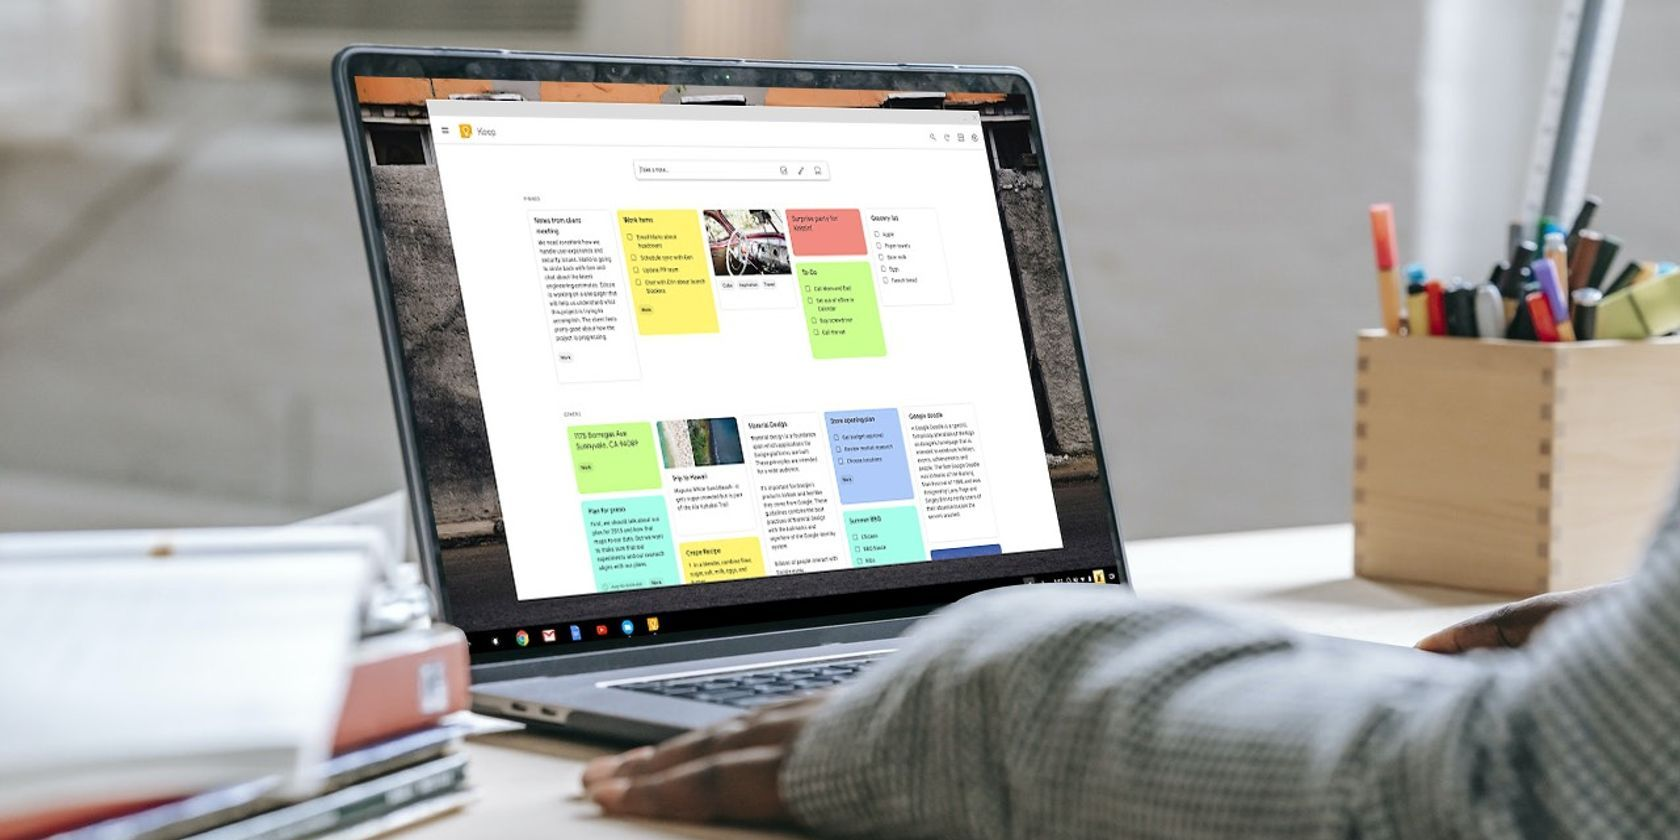 5 Ways to Make a Better To-Do List With Google Keep